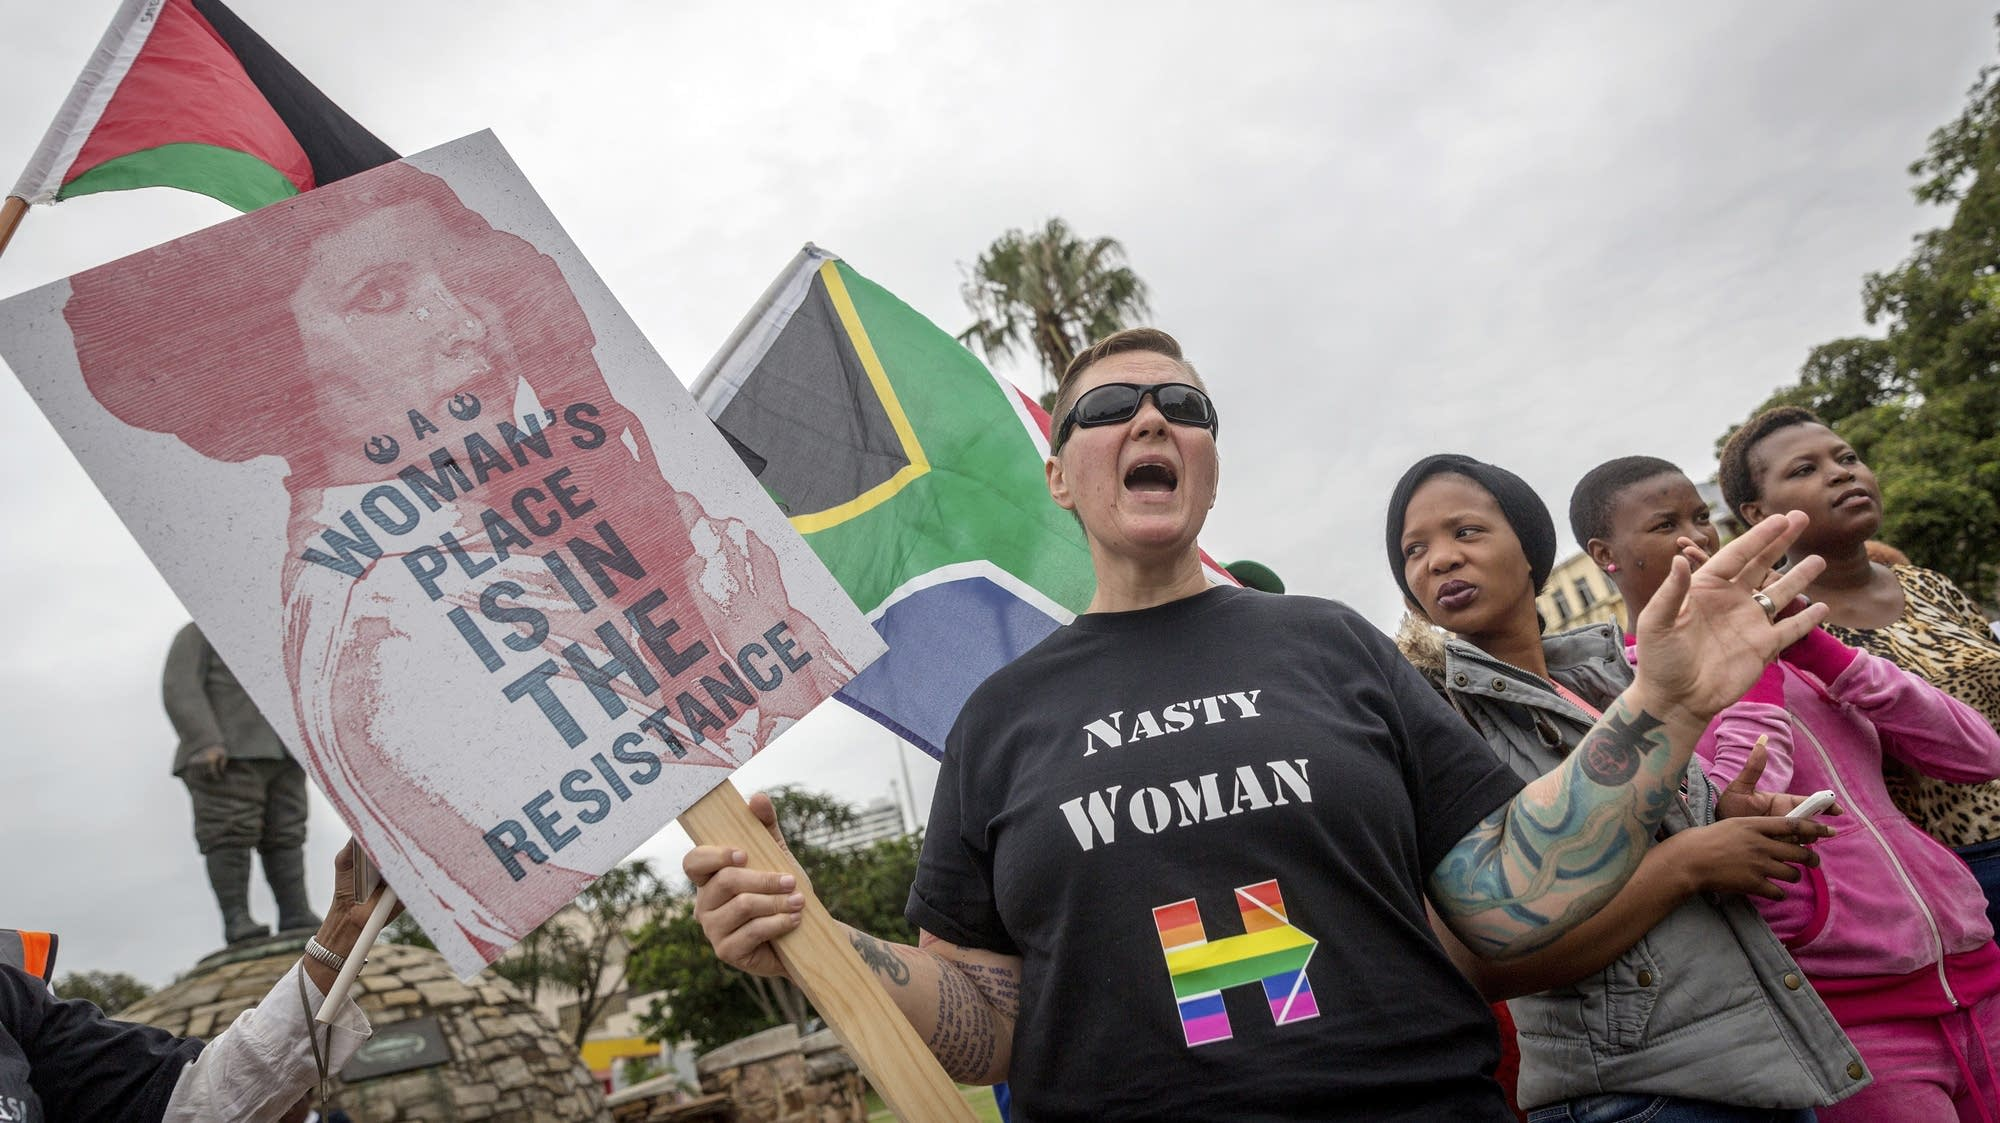 Durban, South Africa: Anti-Trump protesters shout and march.